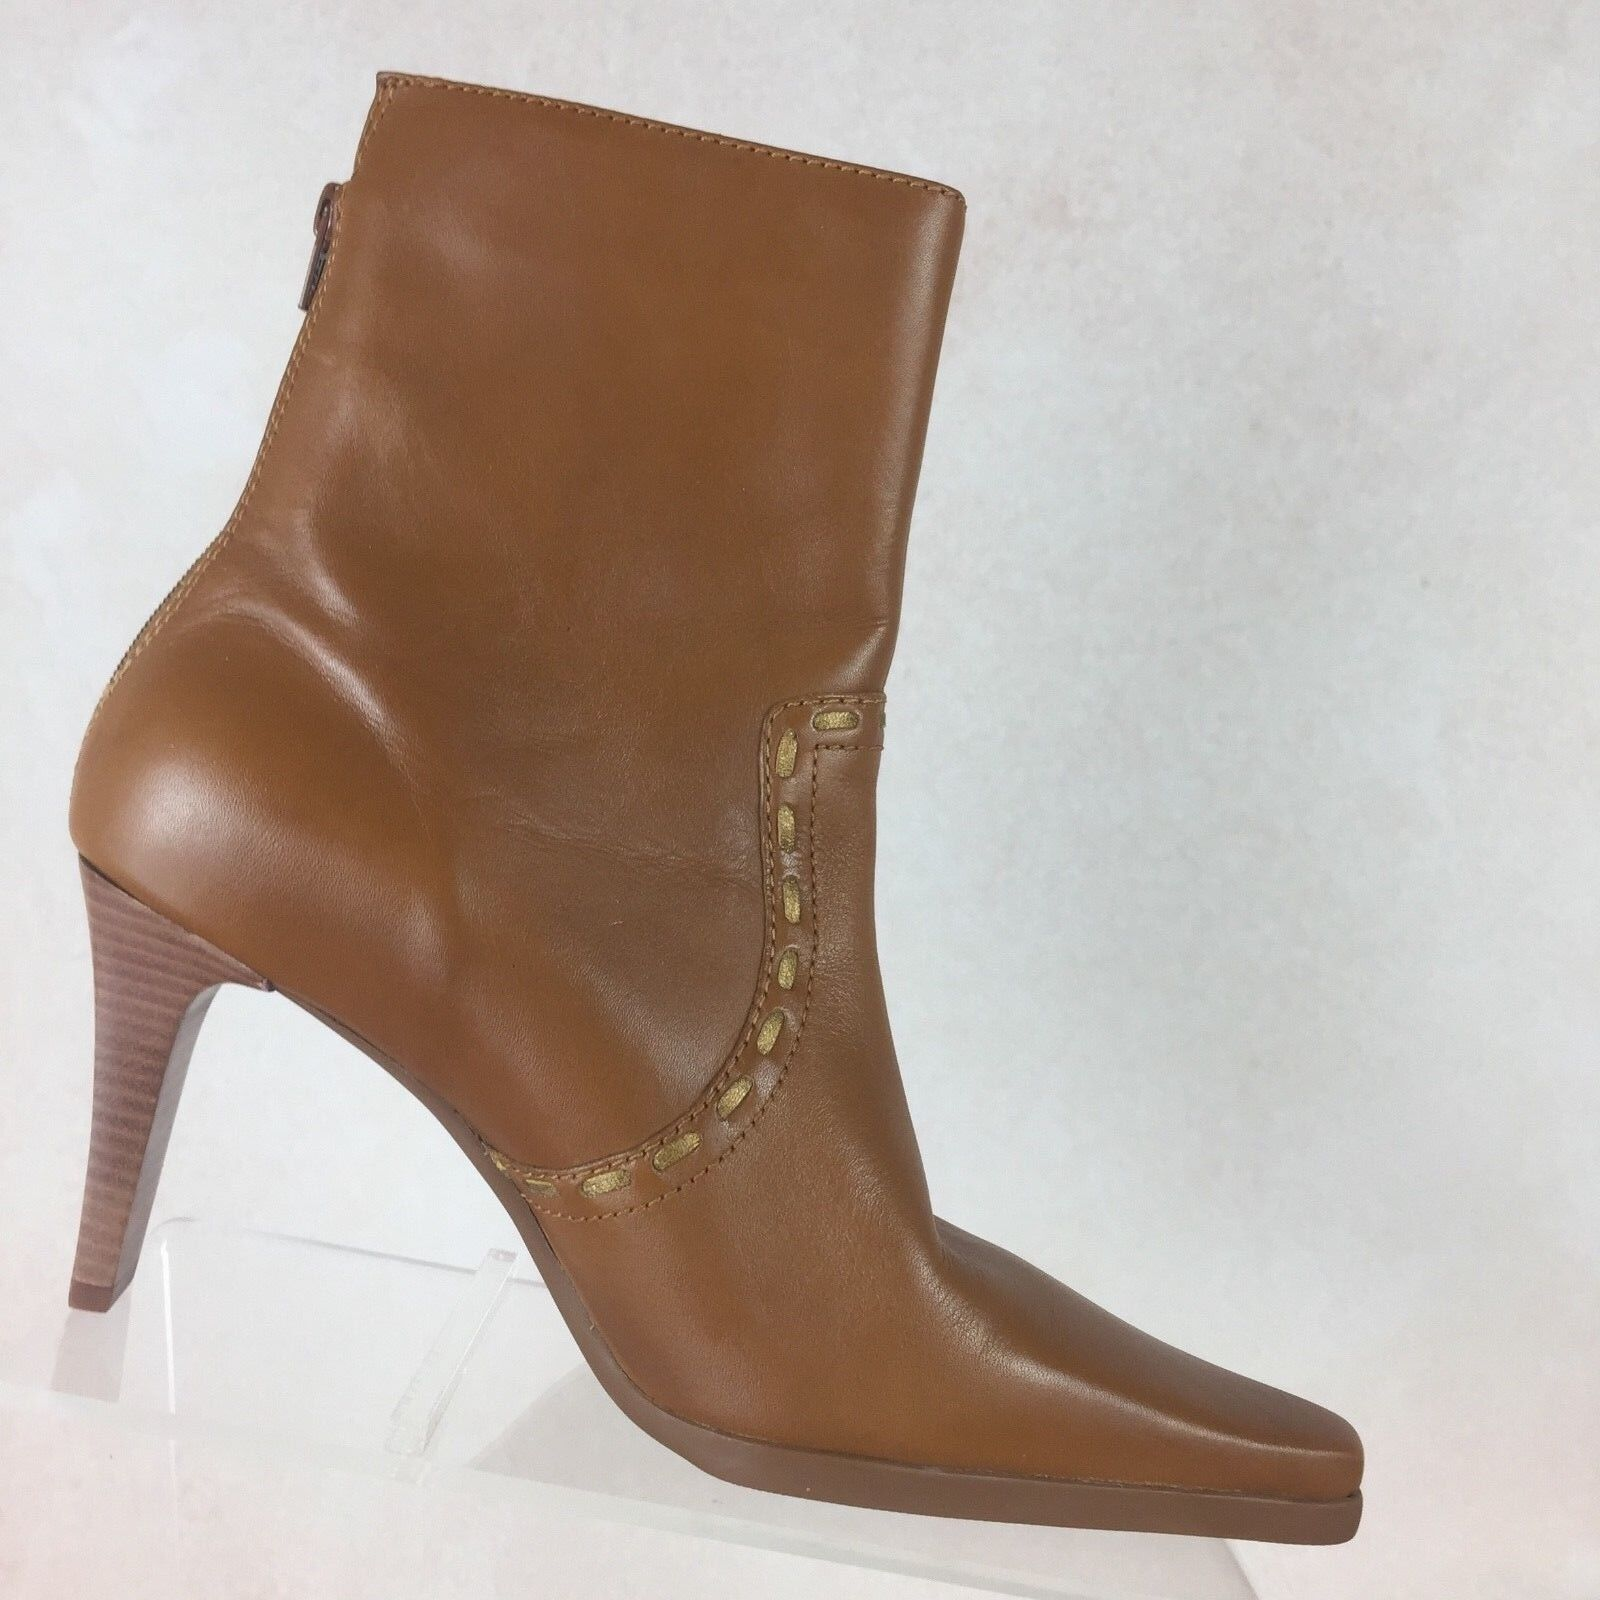 UNISA KEITH B69 Brown Leather Ankle Boots Zipper Heels Pointy Toes shoes Sz 8.5B